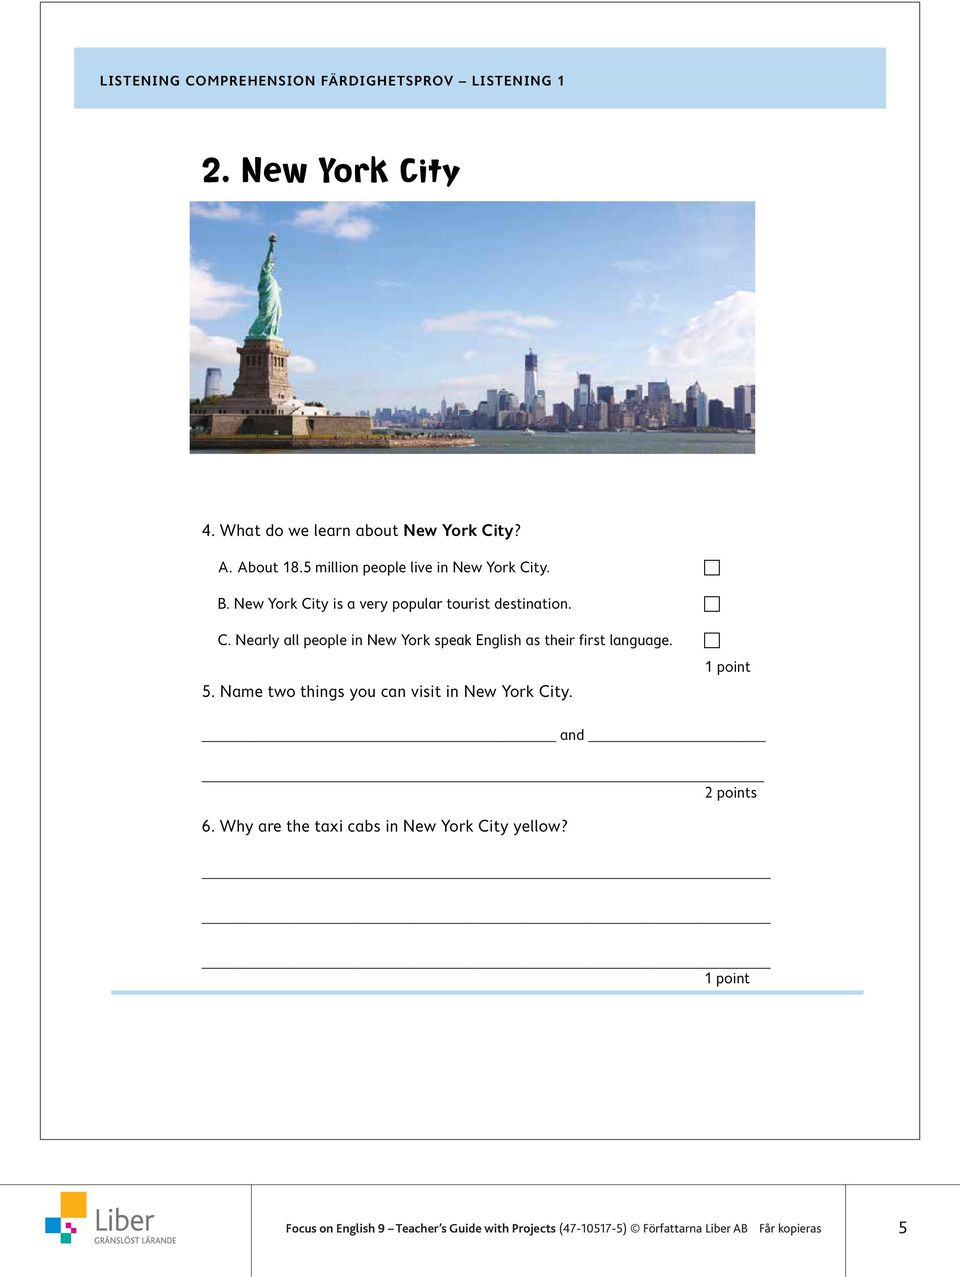 Nearly all people in New York speak English as their first language. c 5. Name two things you can visit in New York City. and 2 points 6.